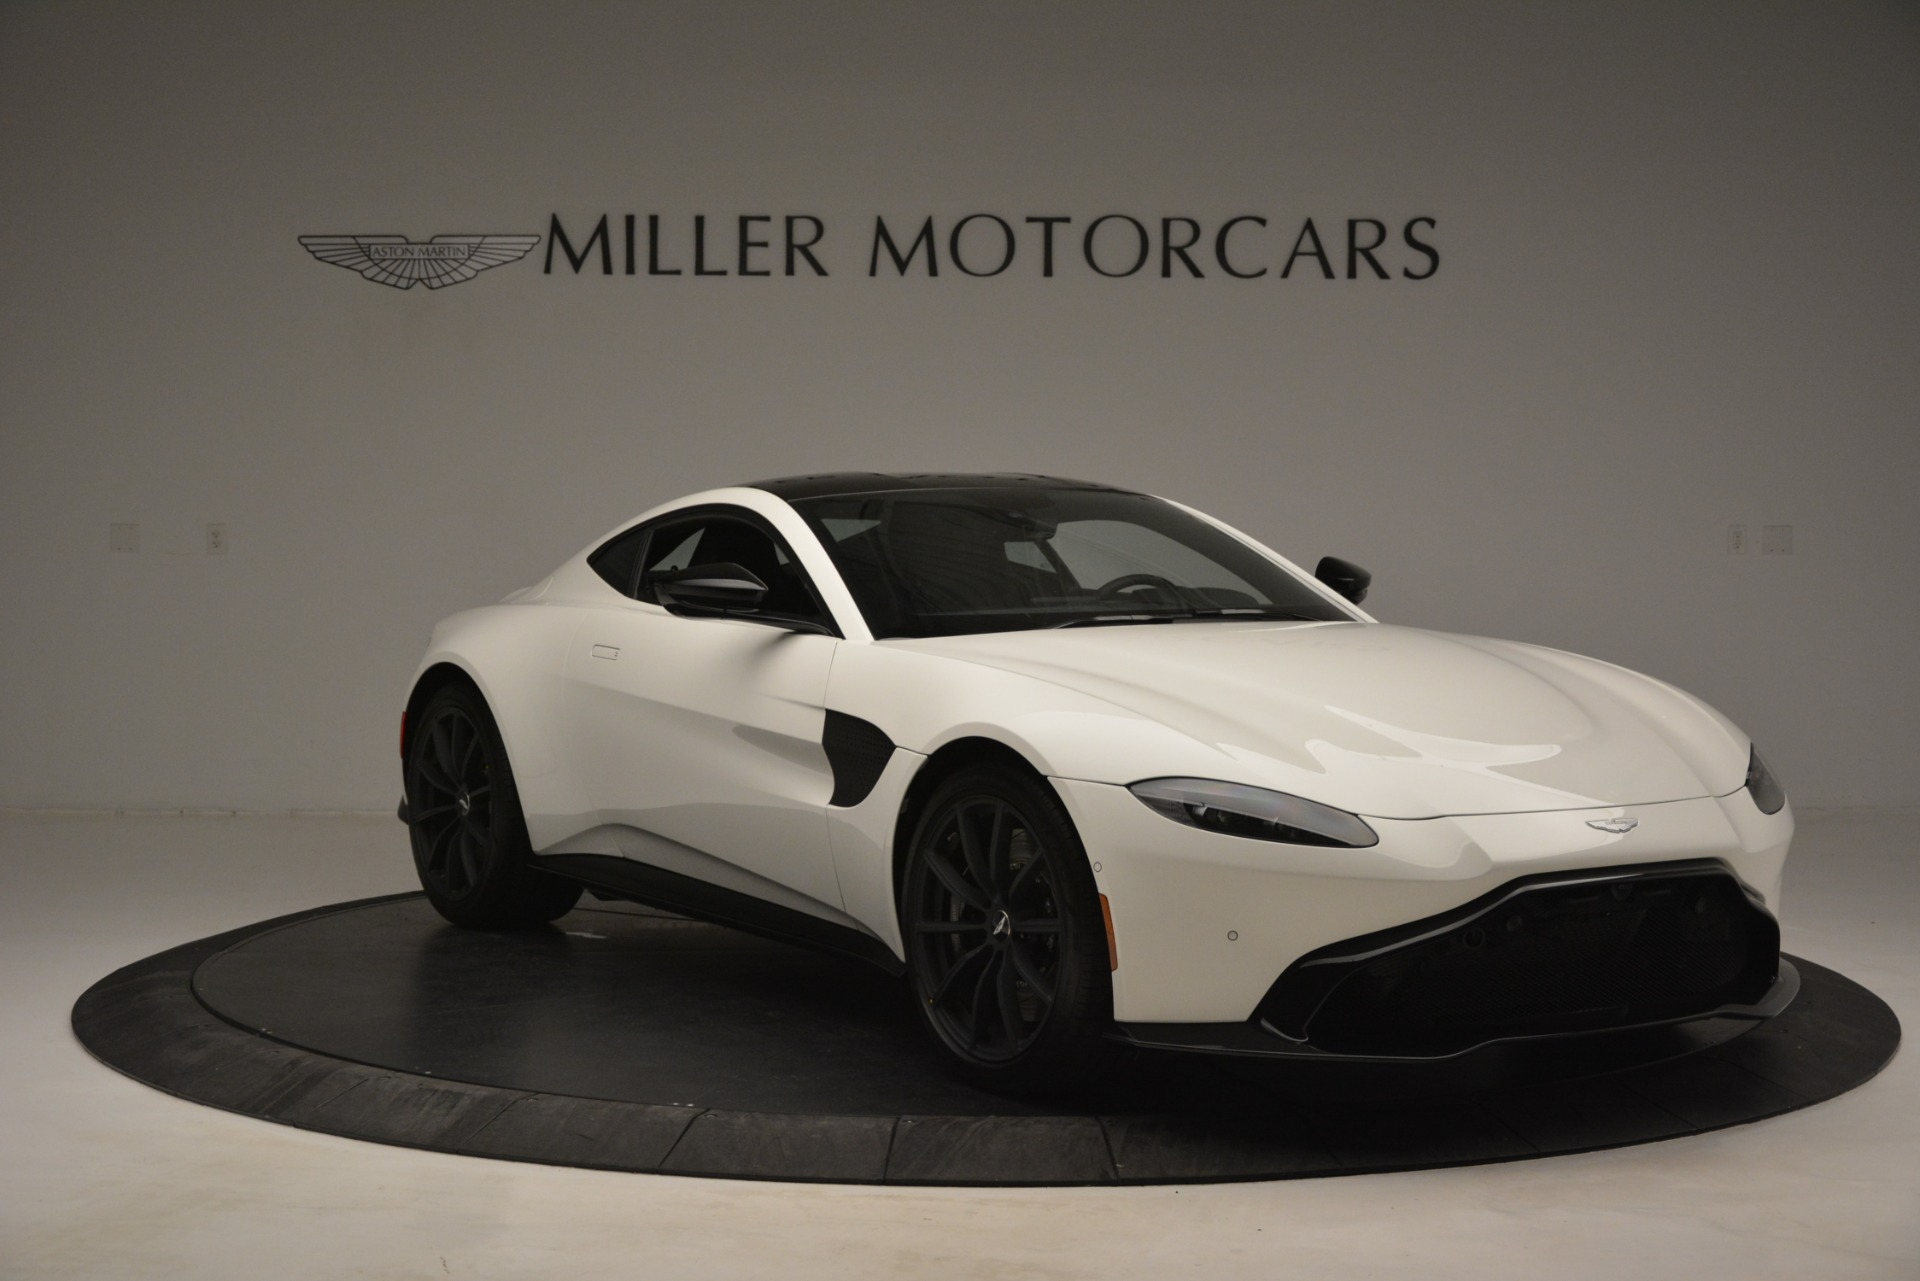 New 2019 Aston Martin Vantage V8 For Sale In Westport, CT 3053_p11